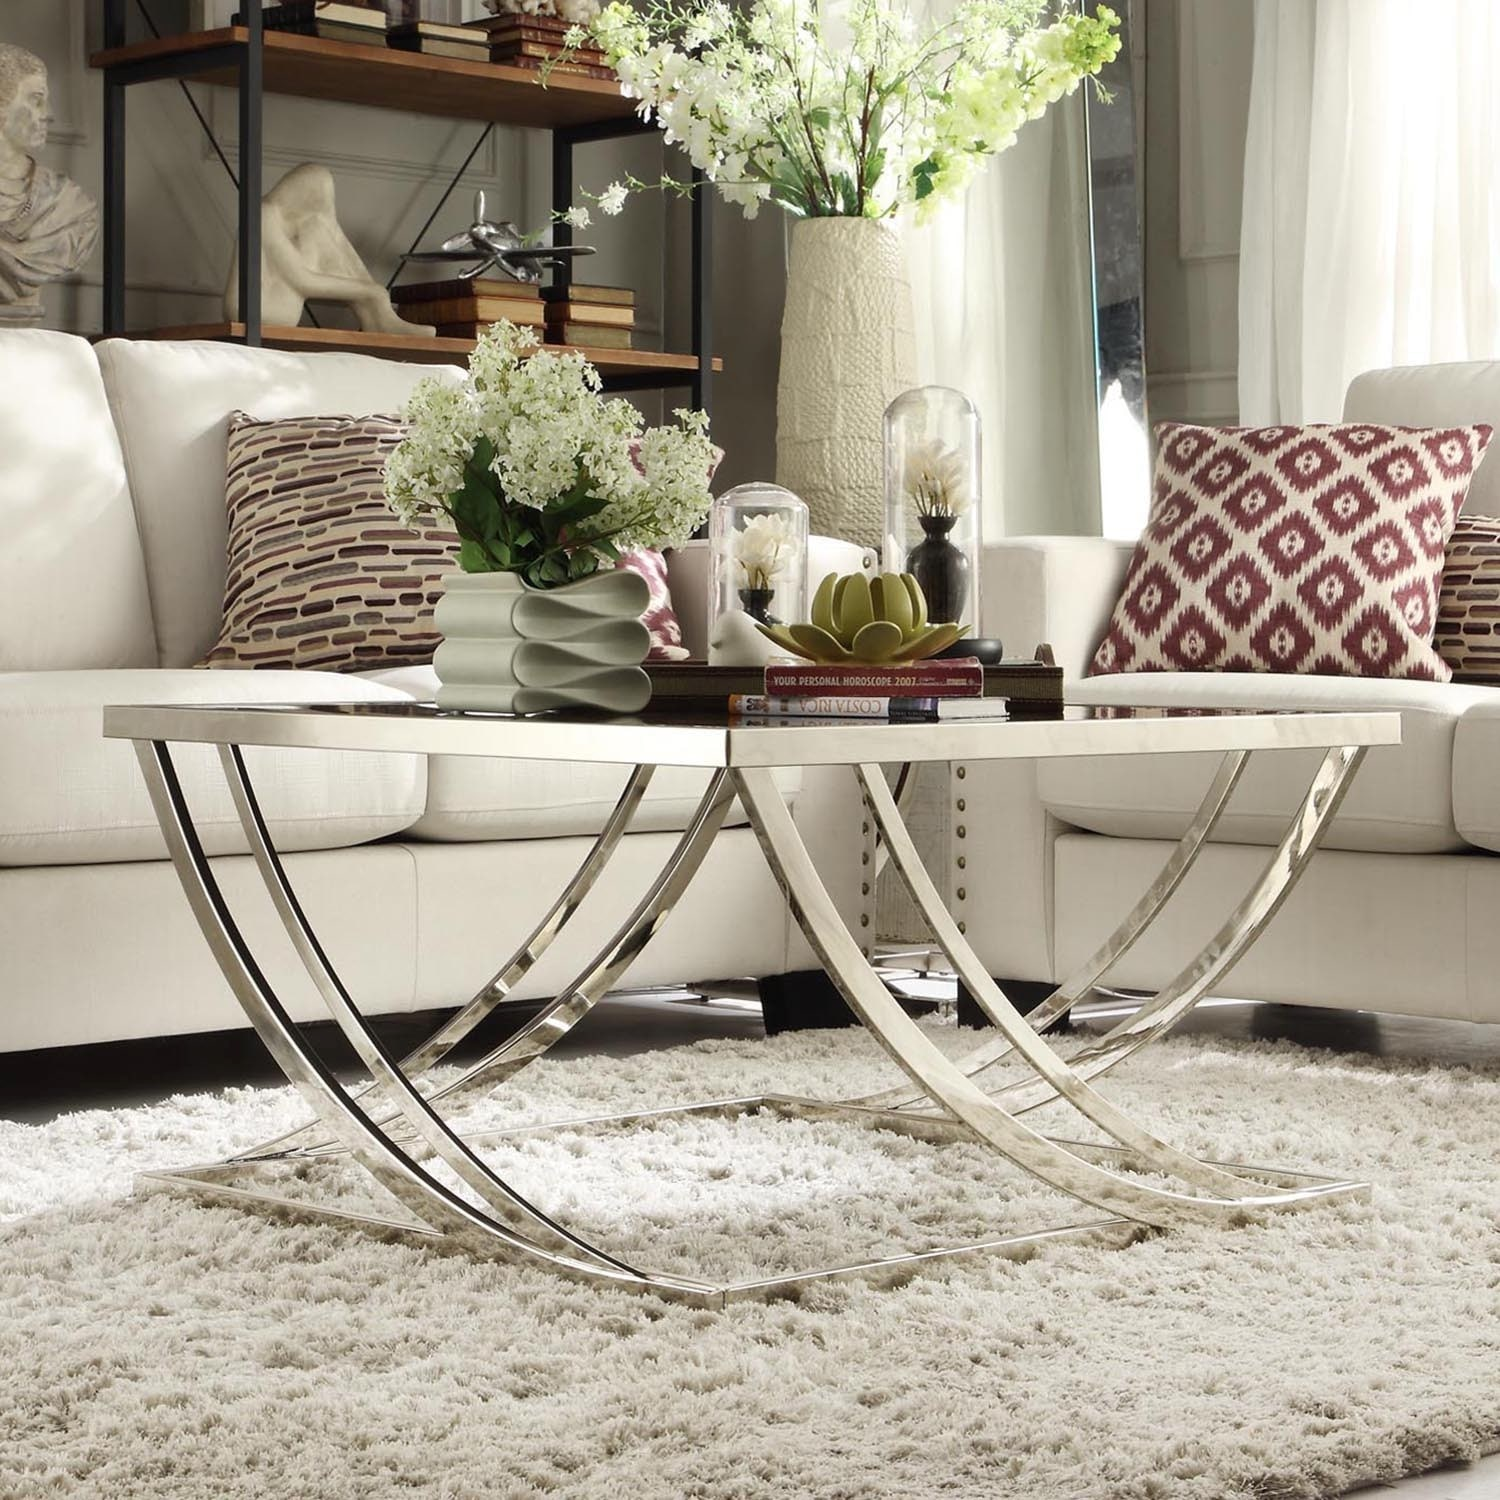 Anson Steel Brushed Arch Curved Sculptural Modern Coffee Table at Sears.com